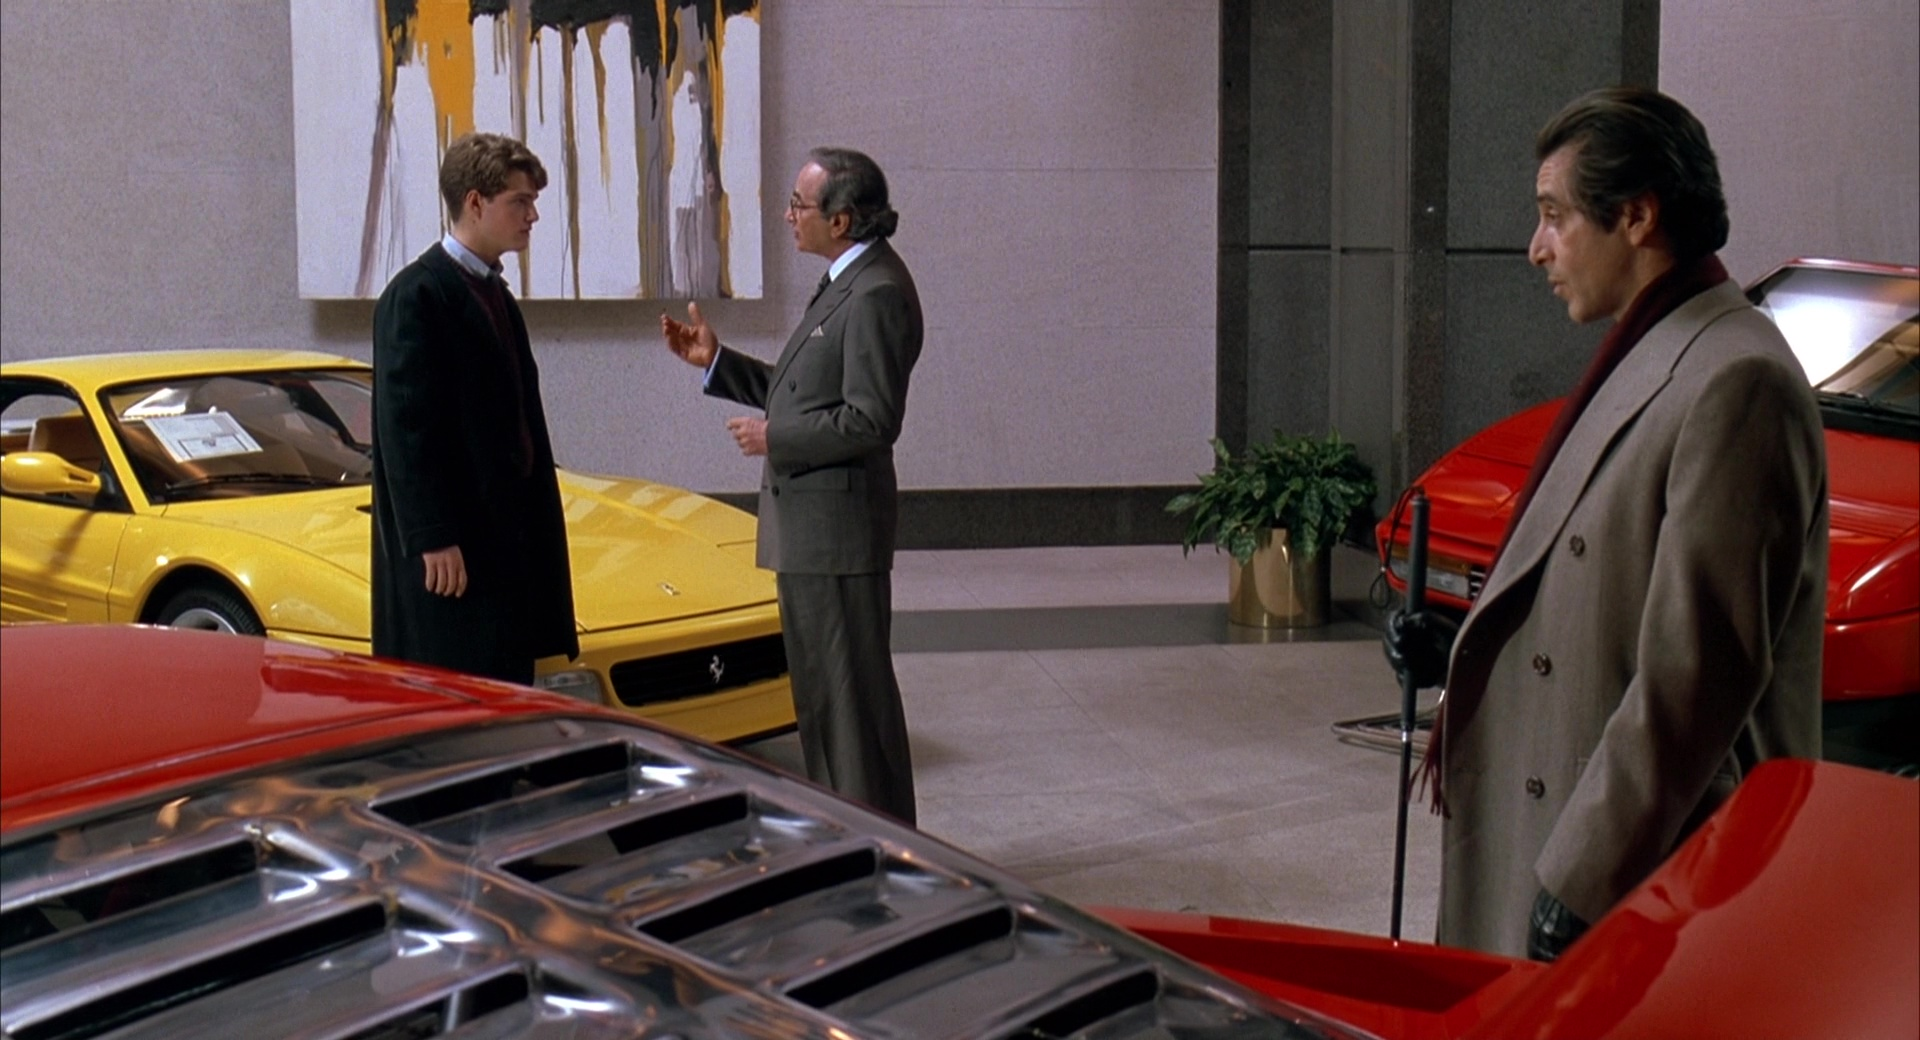 Ferrari Car Dealer Chris O Donnell And Al Pacino In Scent Of A Woman 1992